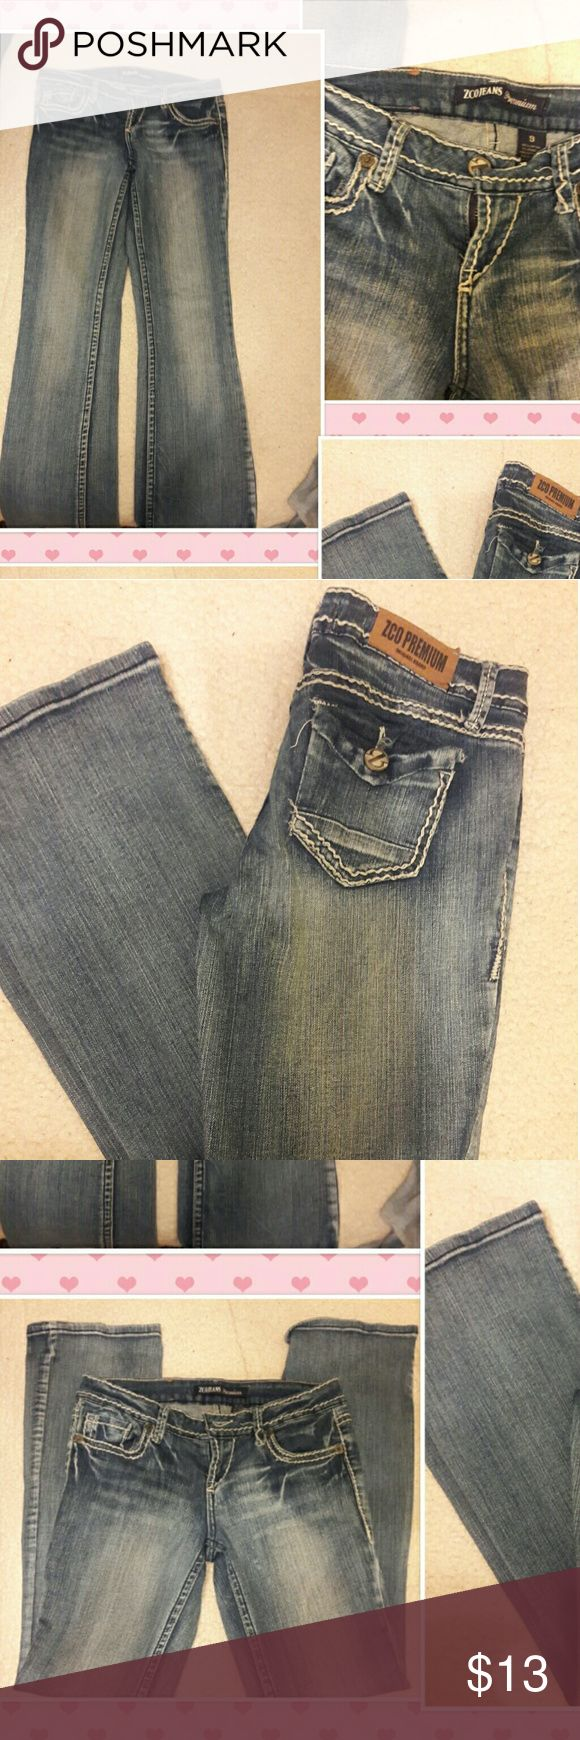 """ZCO JEANS, VERY COOL! SIZE 9, """" ZCO PREMIUM """" ORIGINAL,  SOME STRETCH, GENTLY WORN ZCO Jeans"""